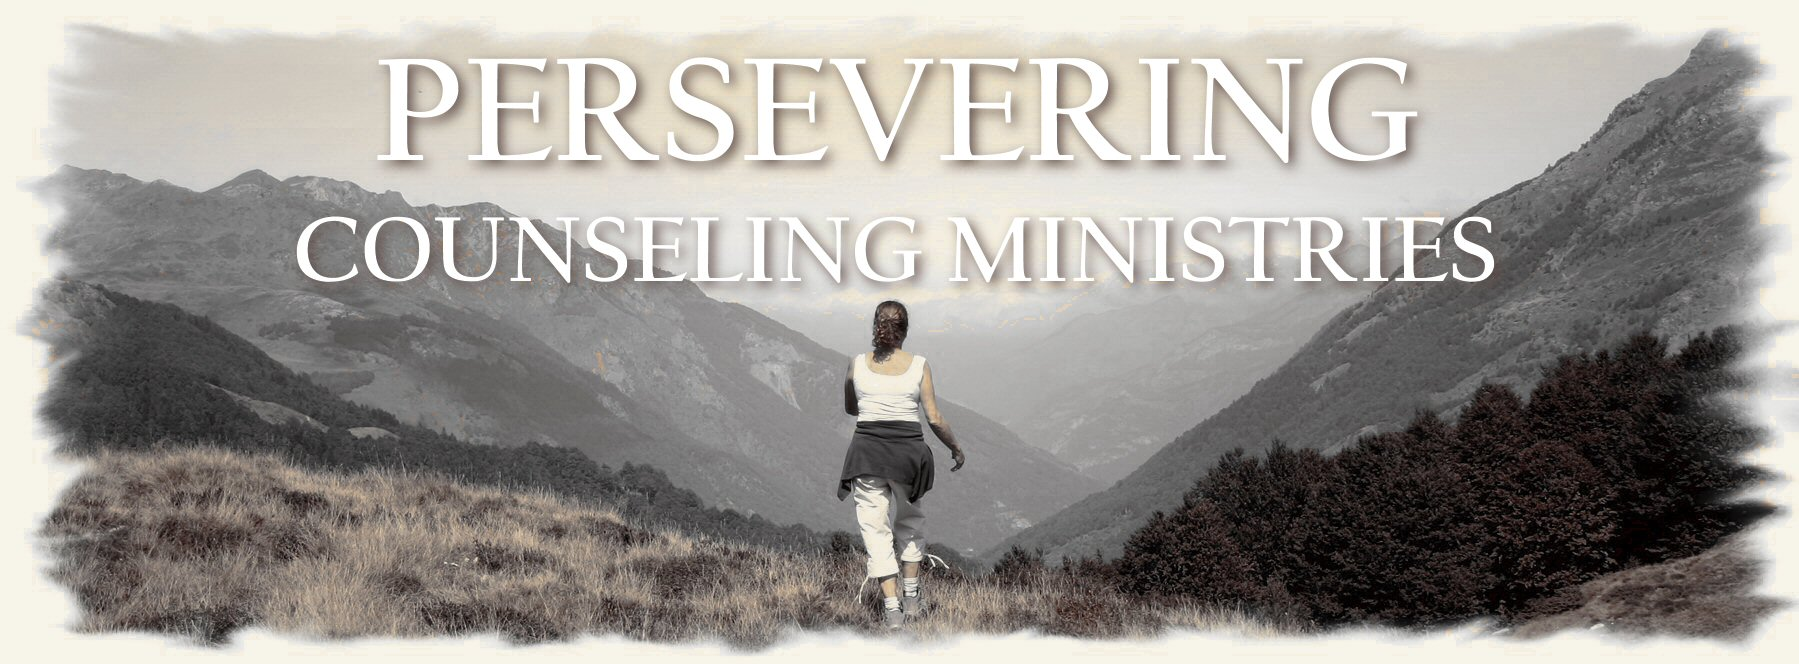 Persevering Counselling Ministries